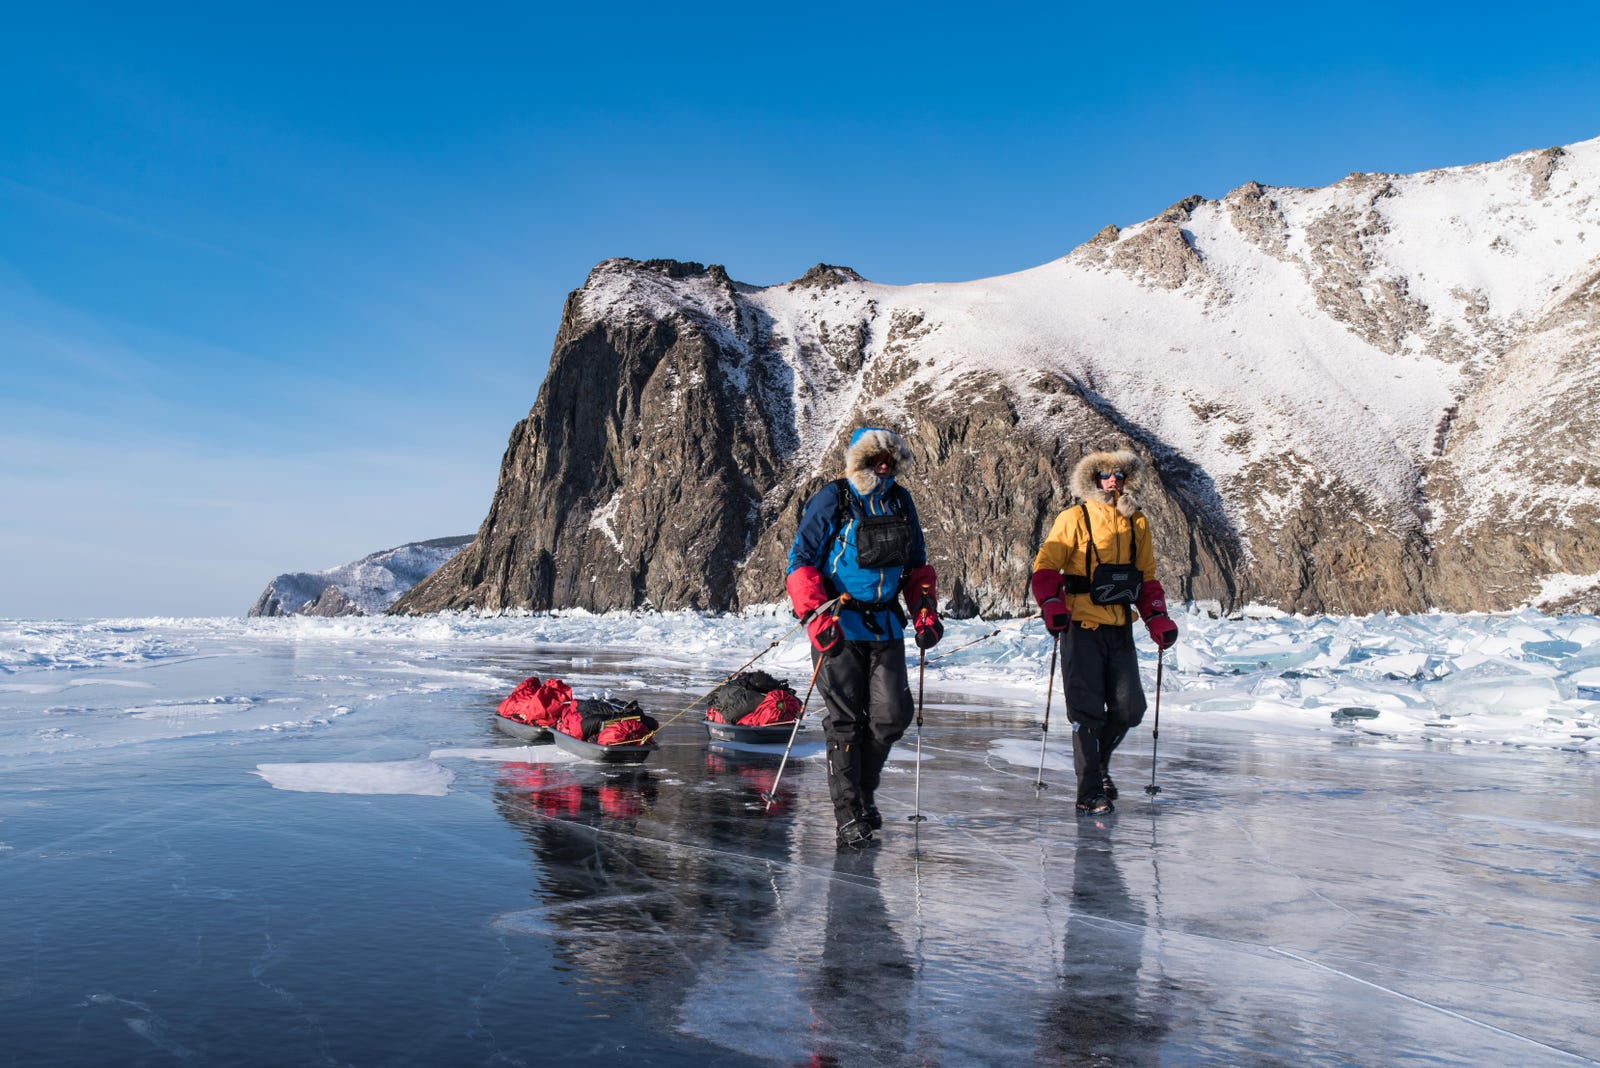 As I Walked Onto Ice I Kept In Mind >> Three Men Crossed Frozen Lake Baikal And Chased More Than A World